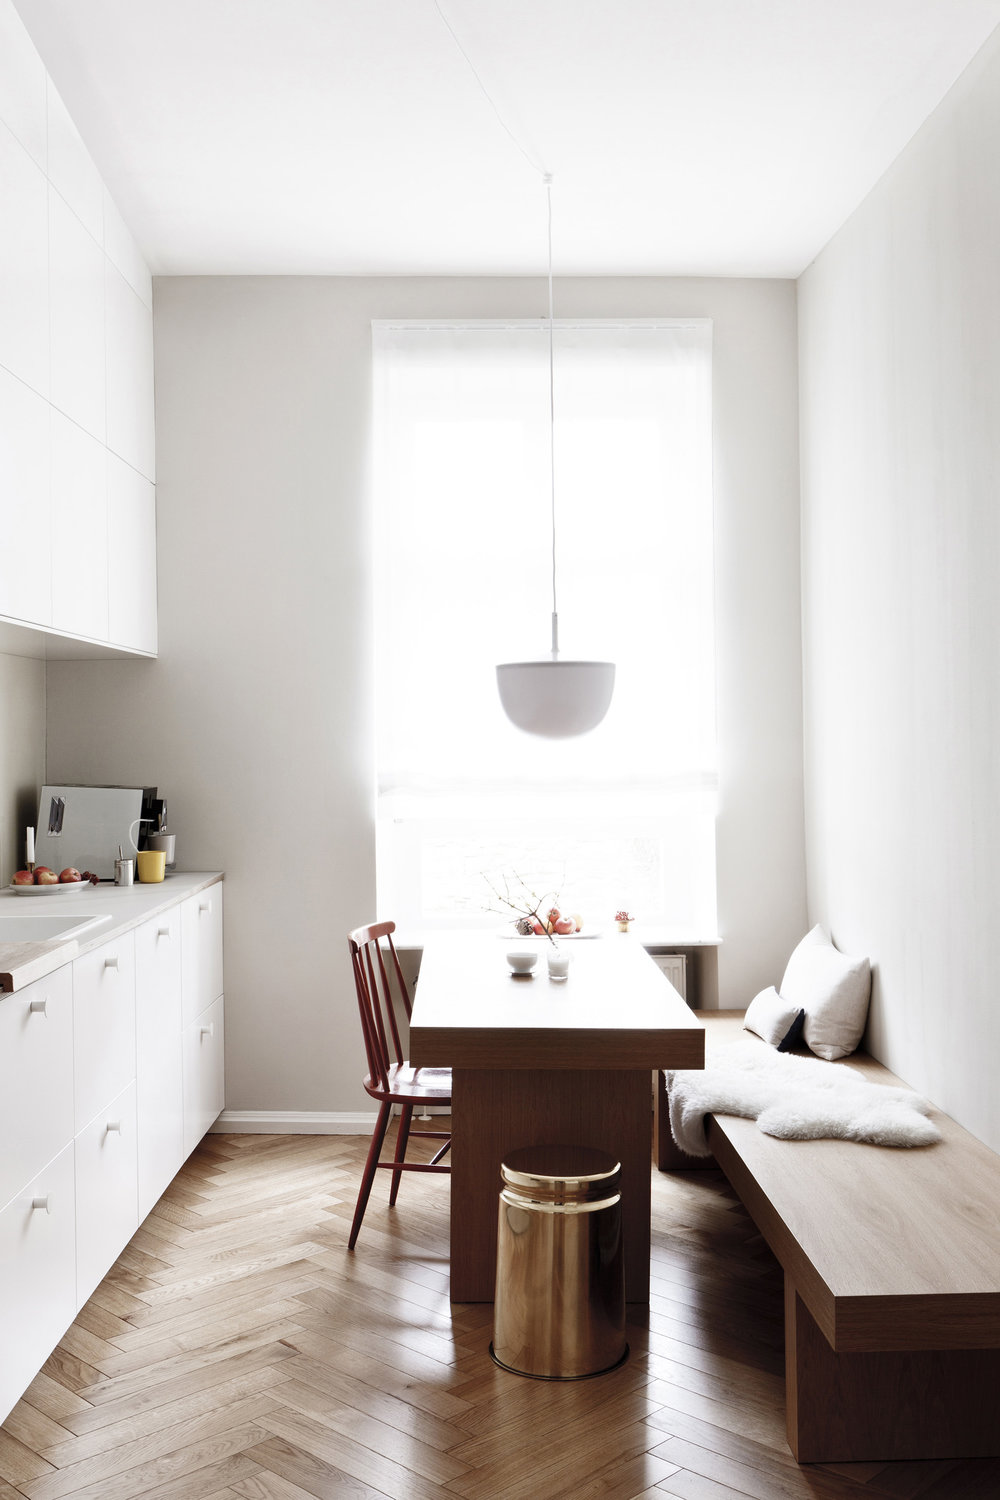 Studio-Oink-House-Cal-II-apartment-remodel-Mainz-Germany-Remodelista-1J.jpg